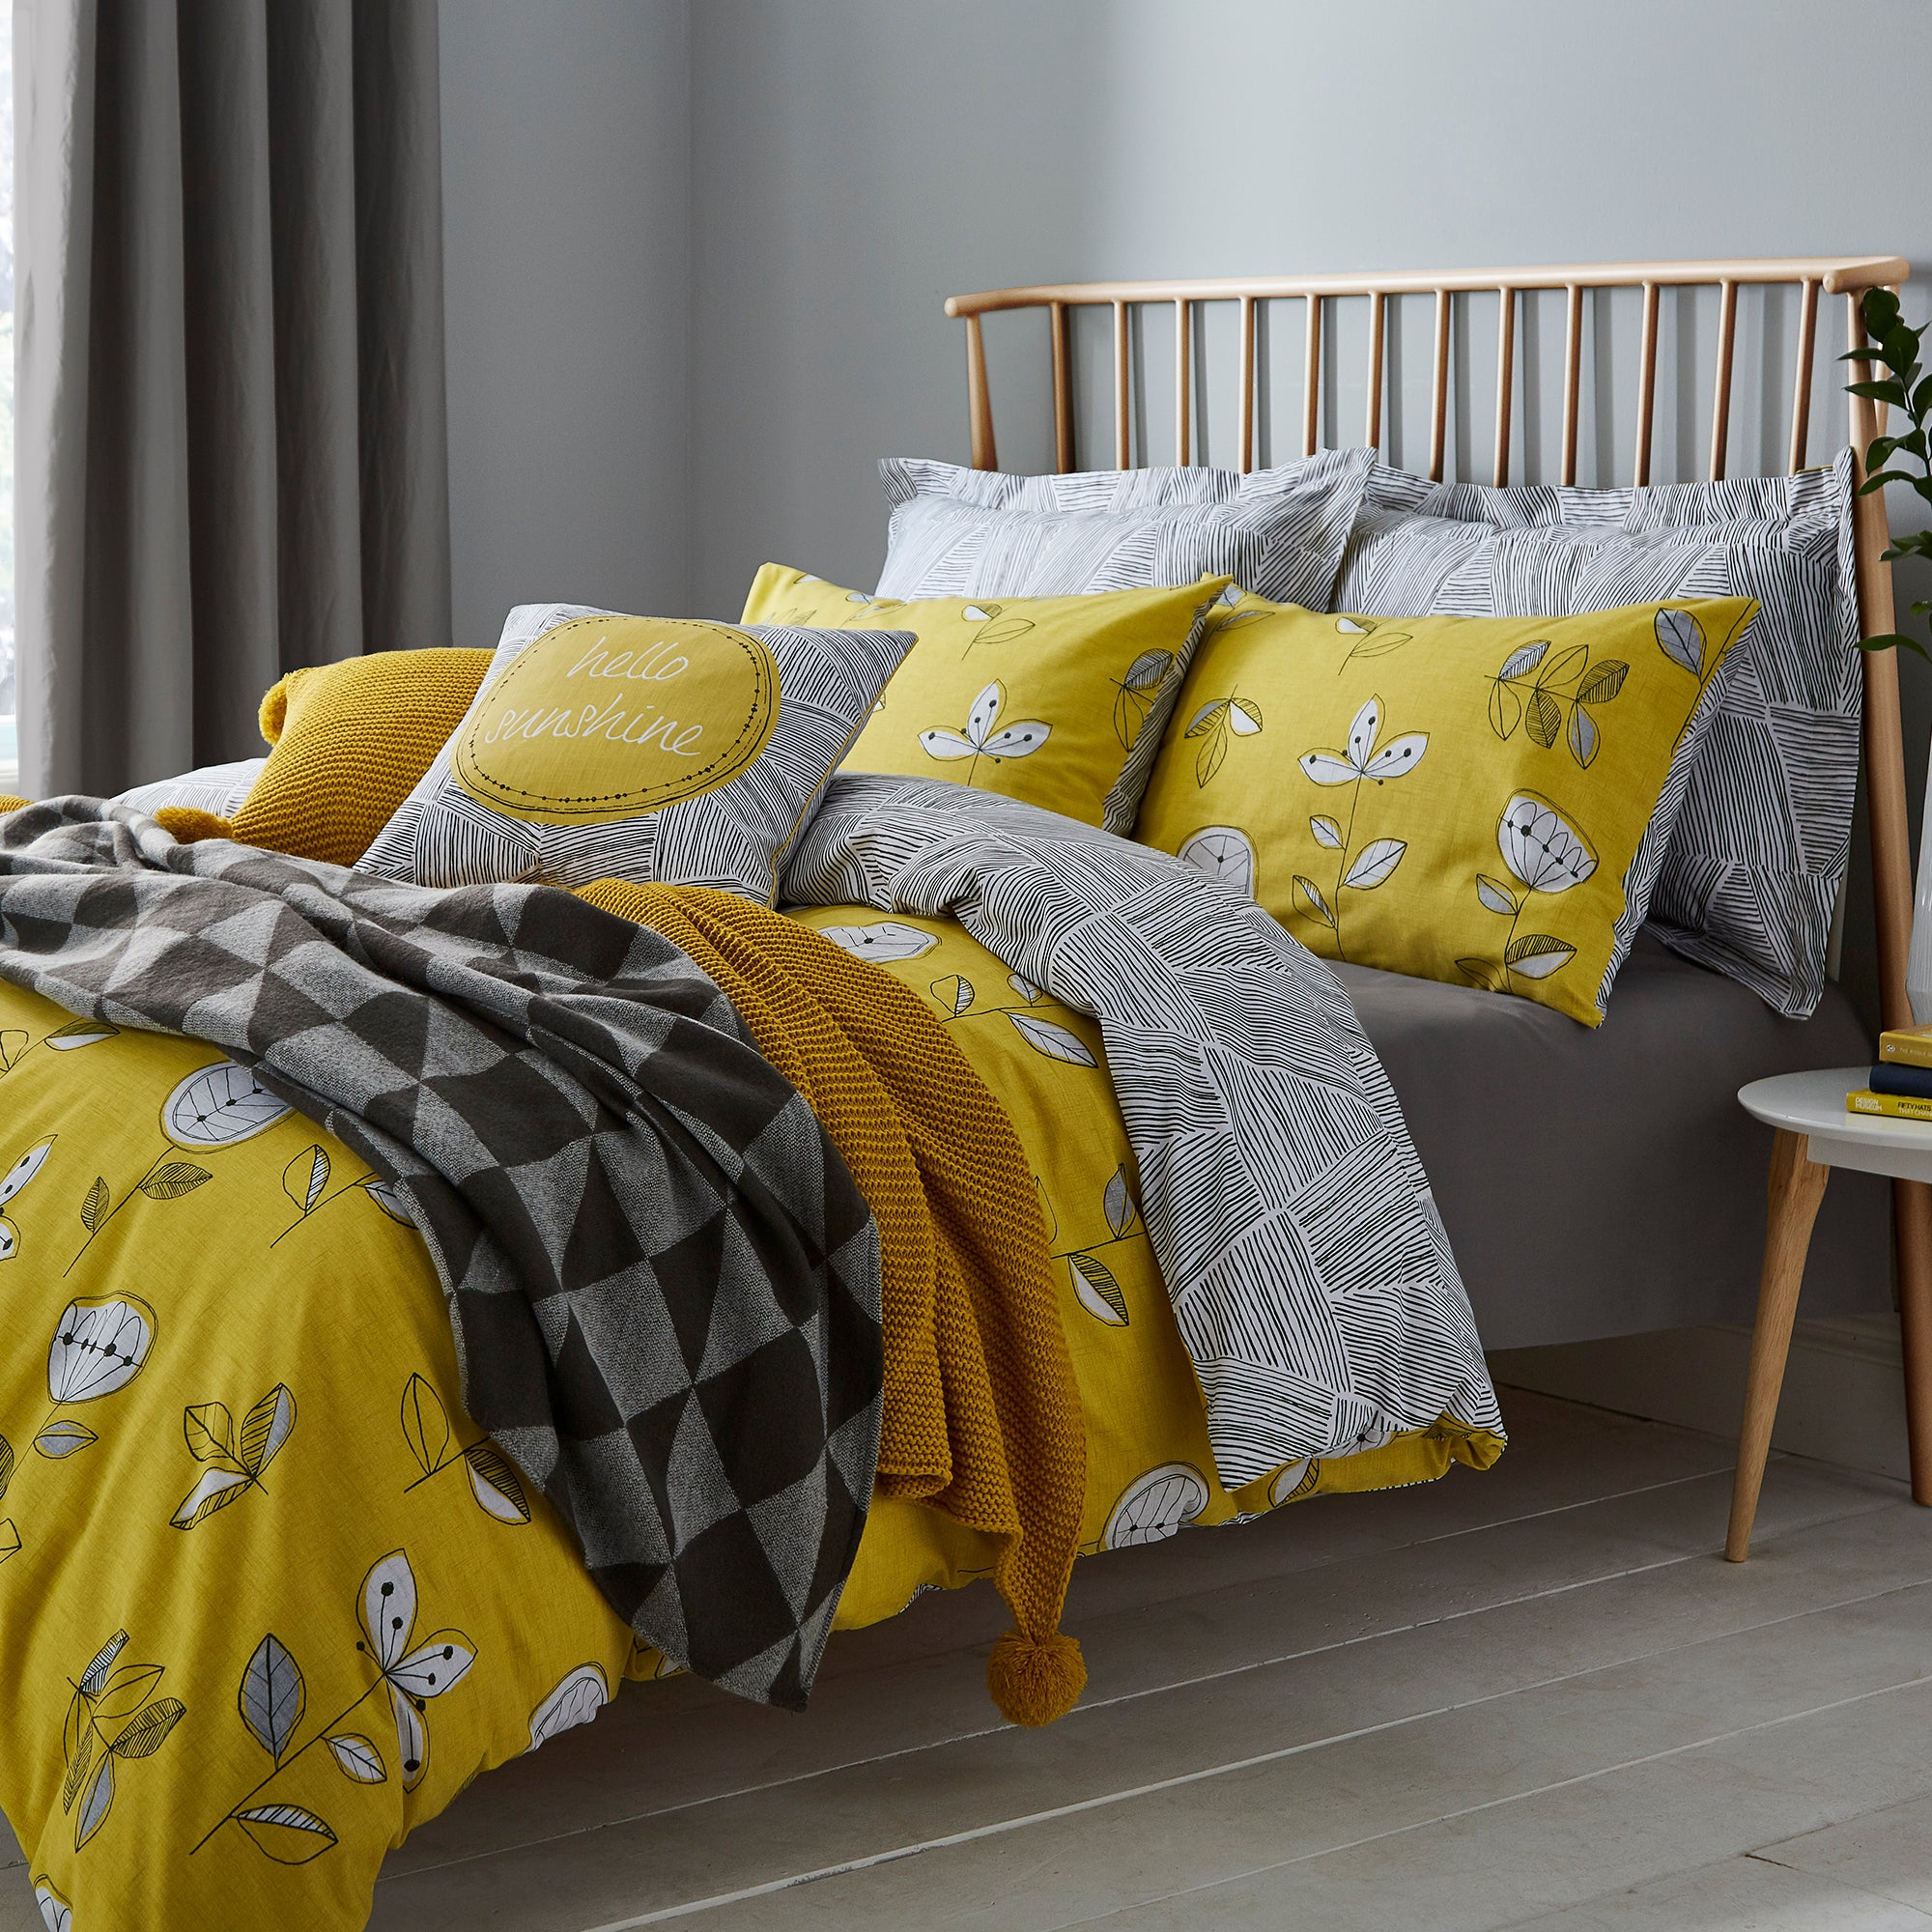 Image of Elements Sunflower Yellow Reversible Duvet Cover and Pillowcase Set Yellow